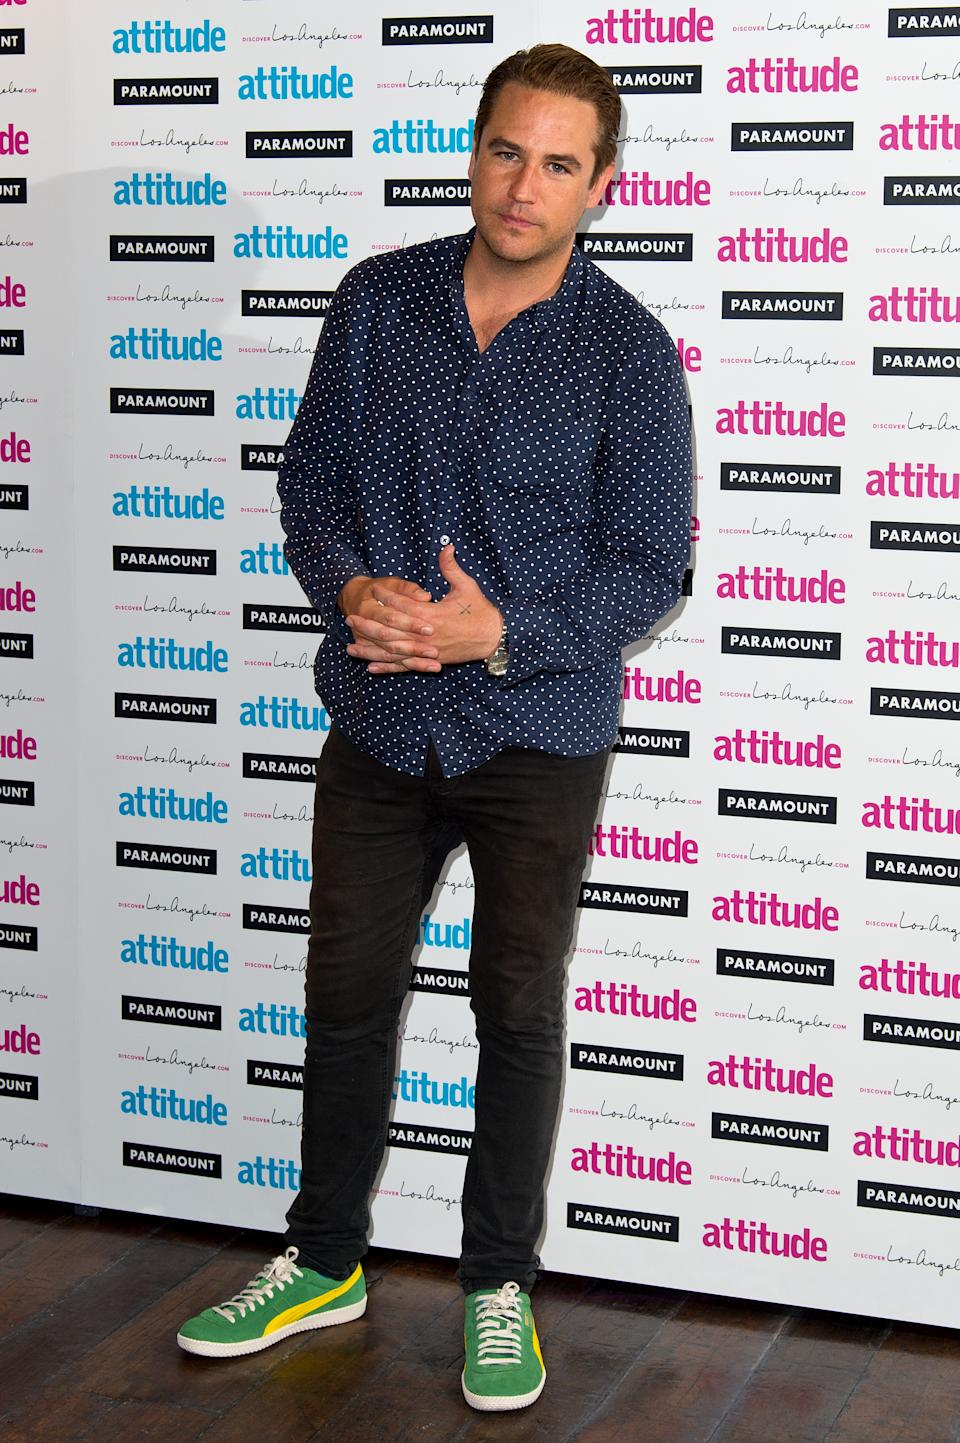 LONDON, ENGLAND - JULY 16:  Kavana attends the Attitude Magazine Hot 100 party at Paramount Club on July 16, 2014 in London, England.  (Photo by Ben A. Pruchnie/Getty Images)